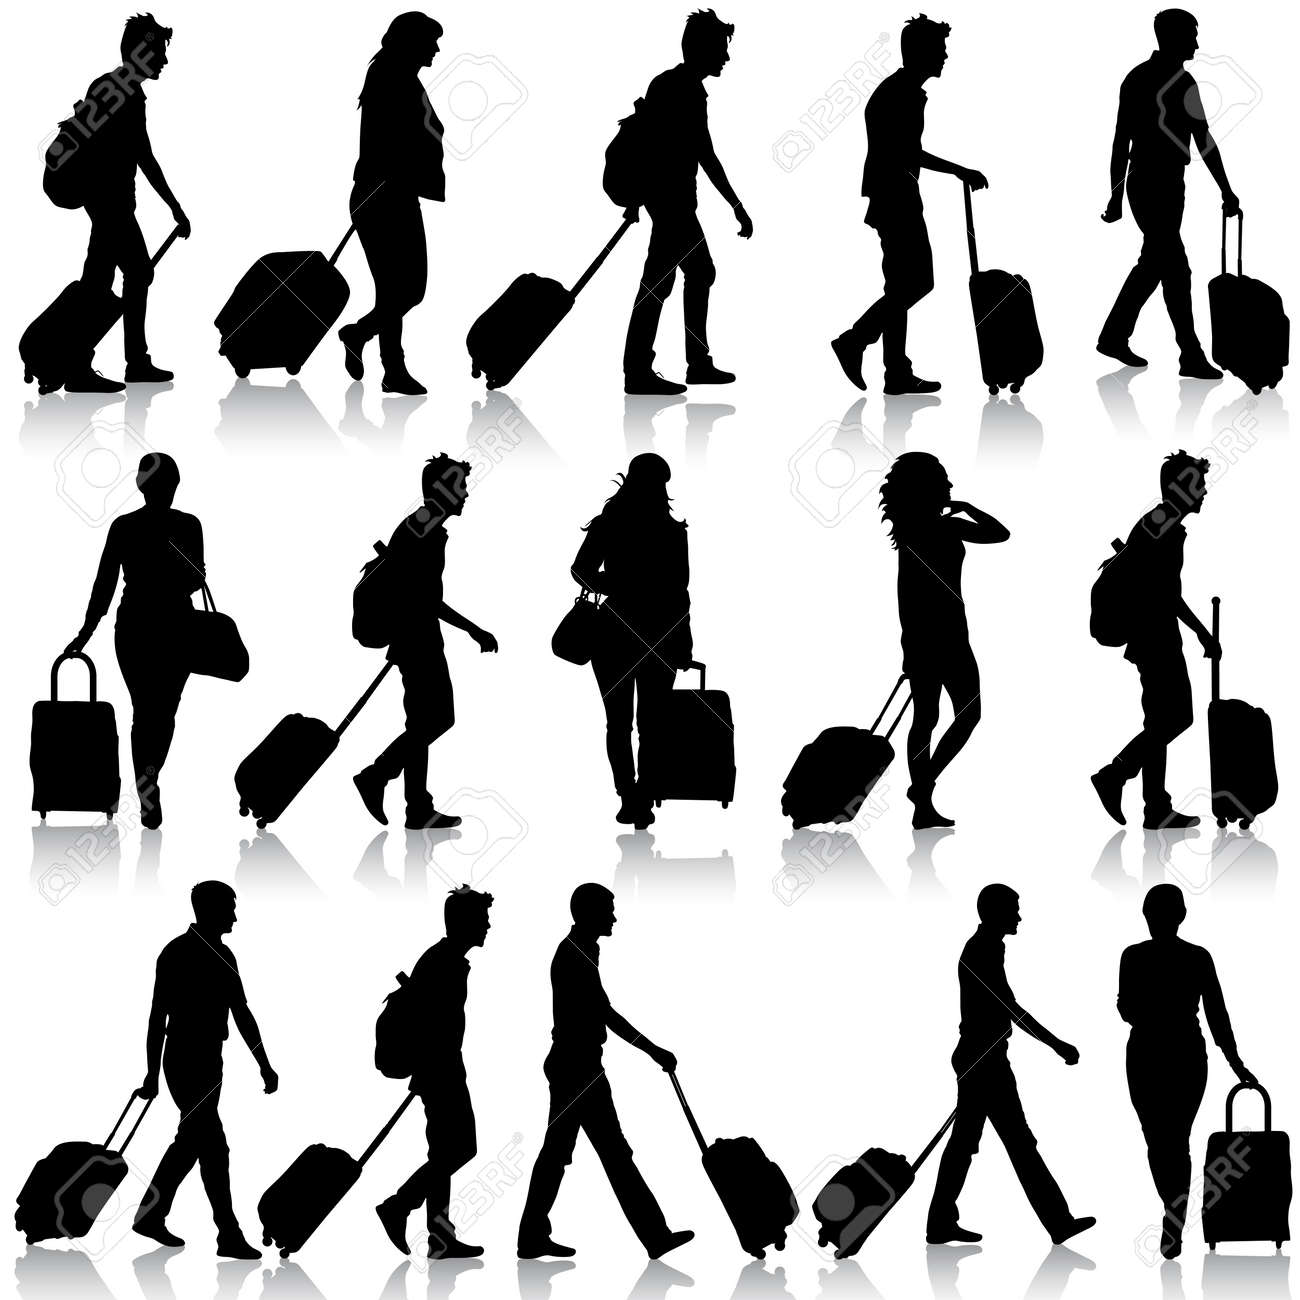 Black silhouettes travelers with suitcases on white background. Vector illustration. - 39162051